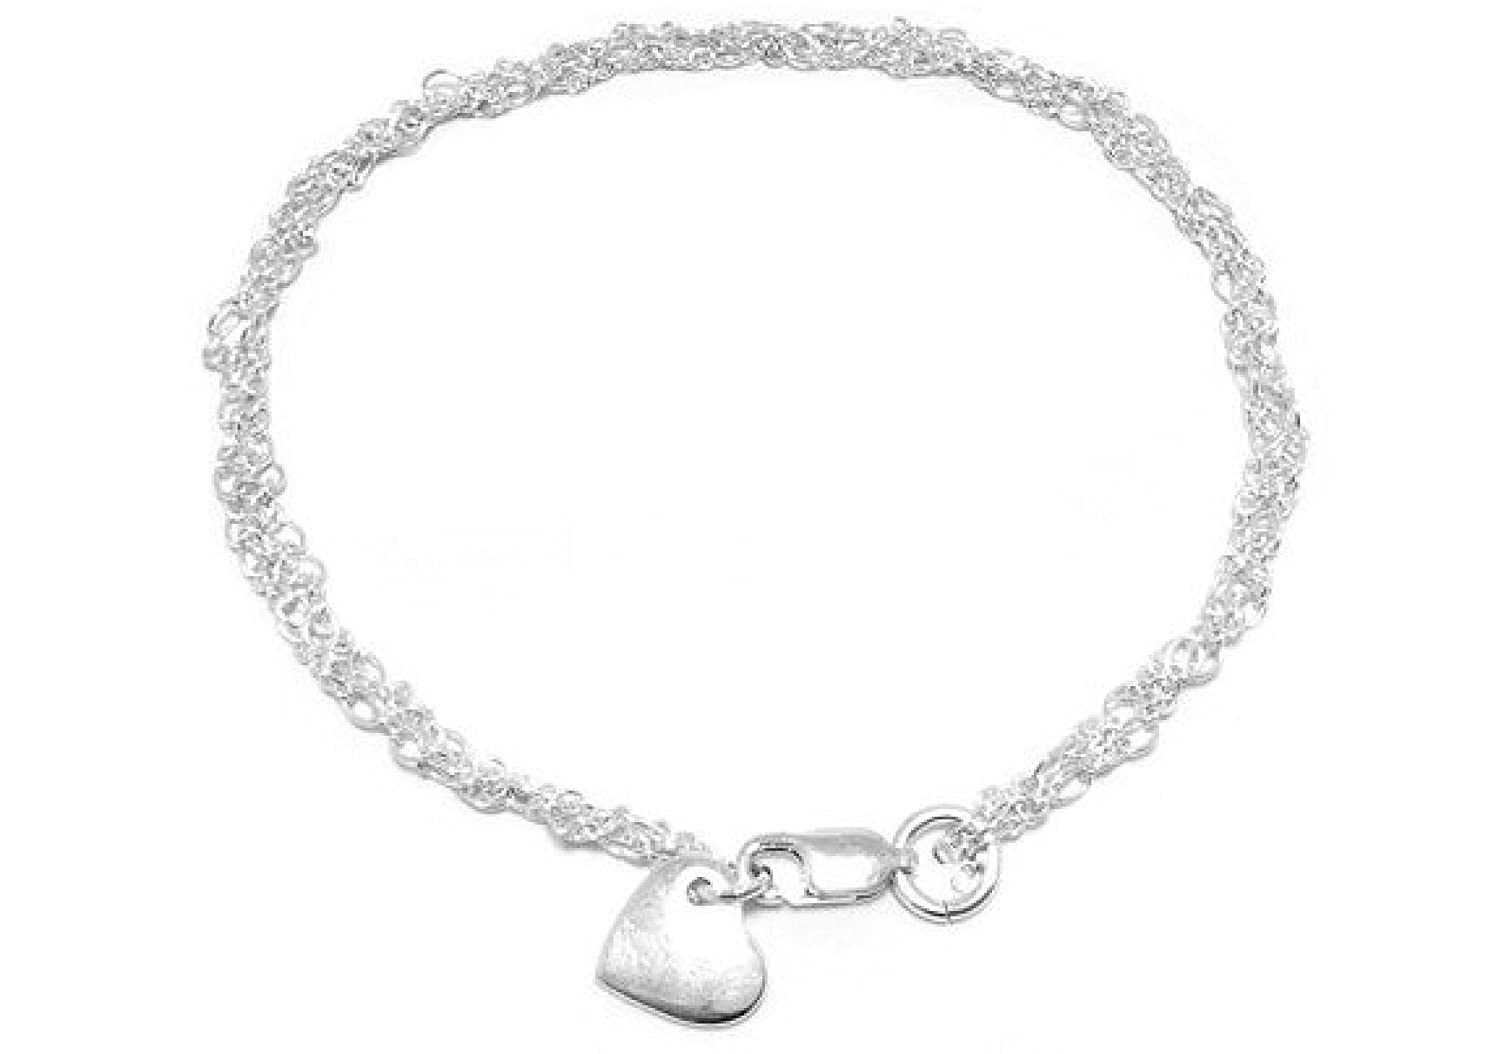 Womens 925 Sterling Silver bracelet Minimalist bracelet Flat heart charm bracelet for girls multistrand dainty silver bracelet for women